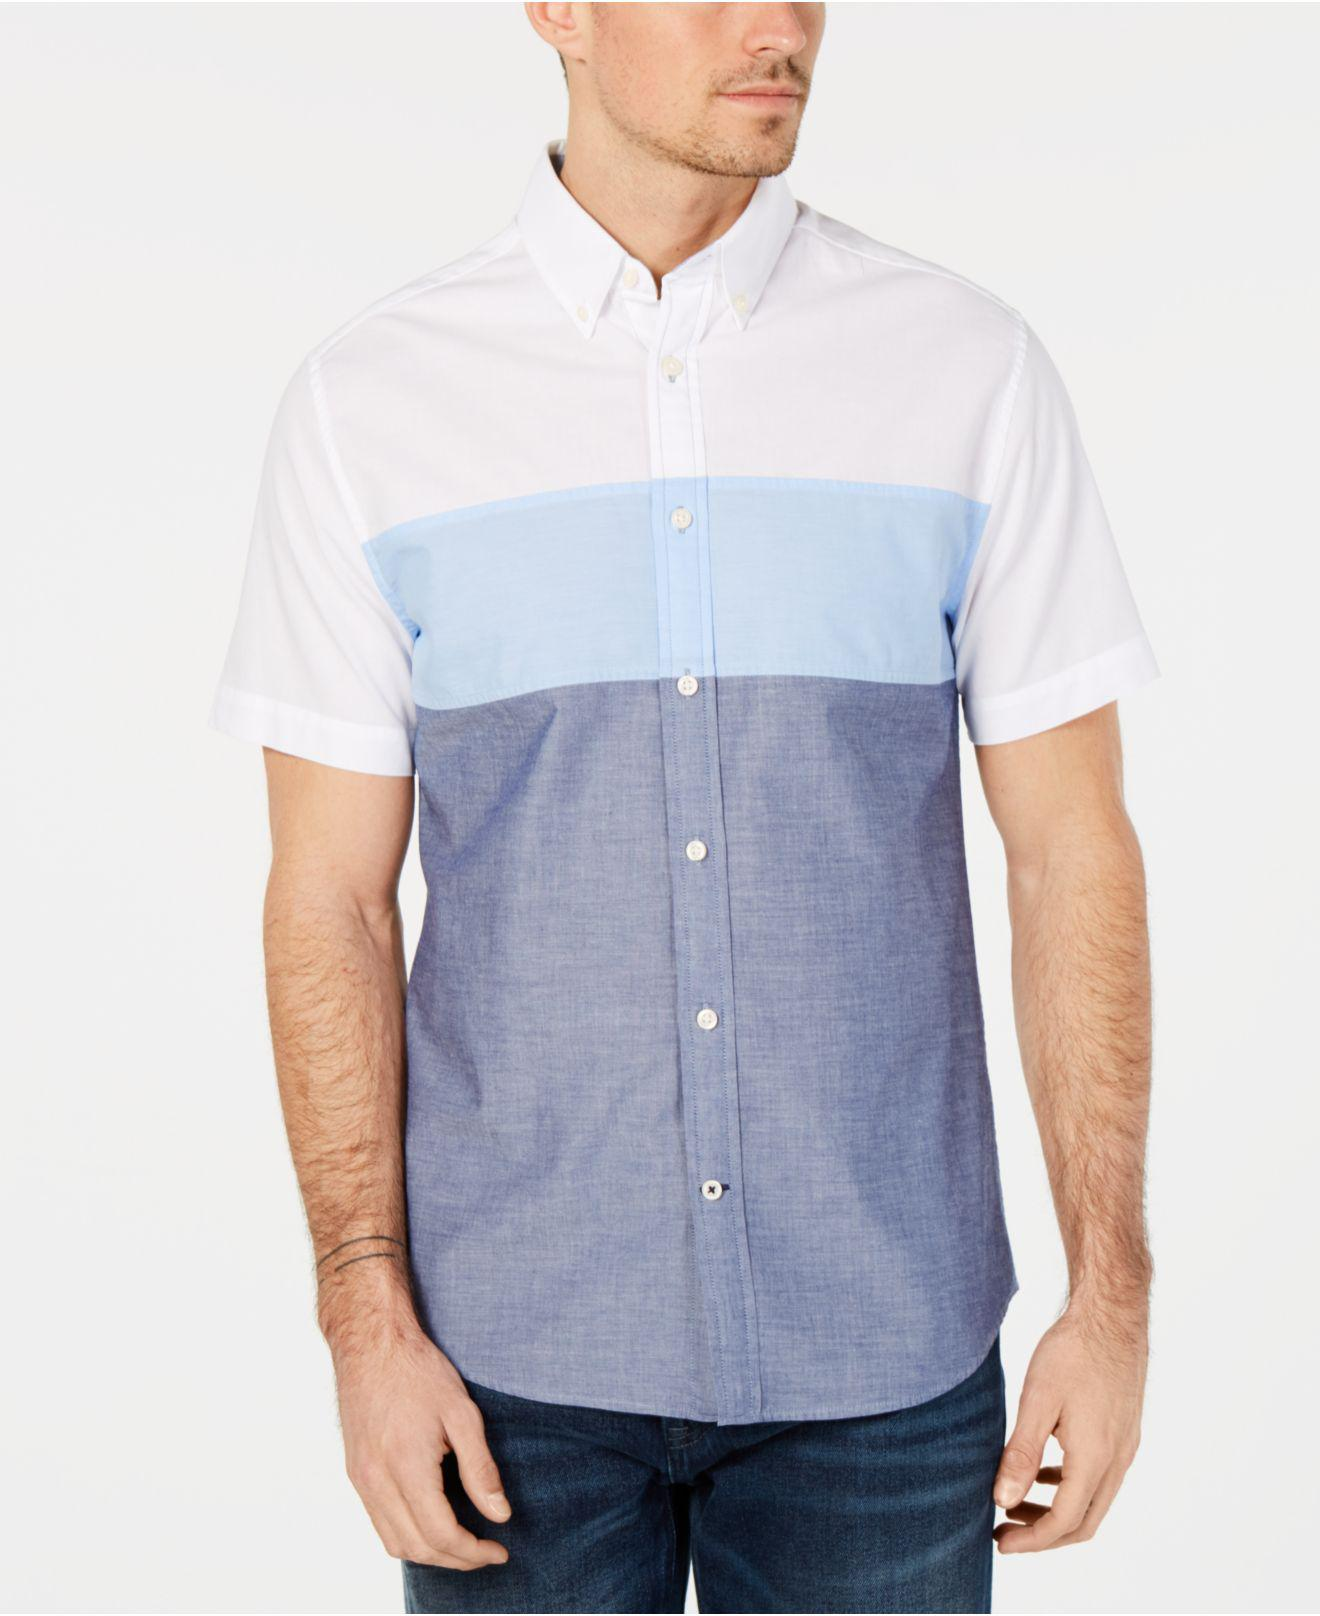 784537688ebd Lyst - Tommy Hilfiger Wainwright Triple Striped Shirt